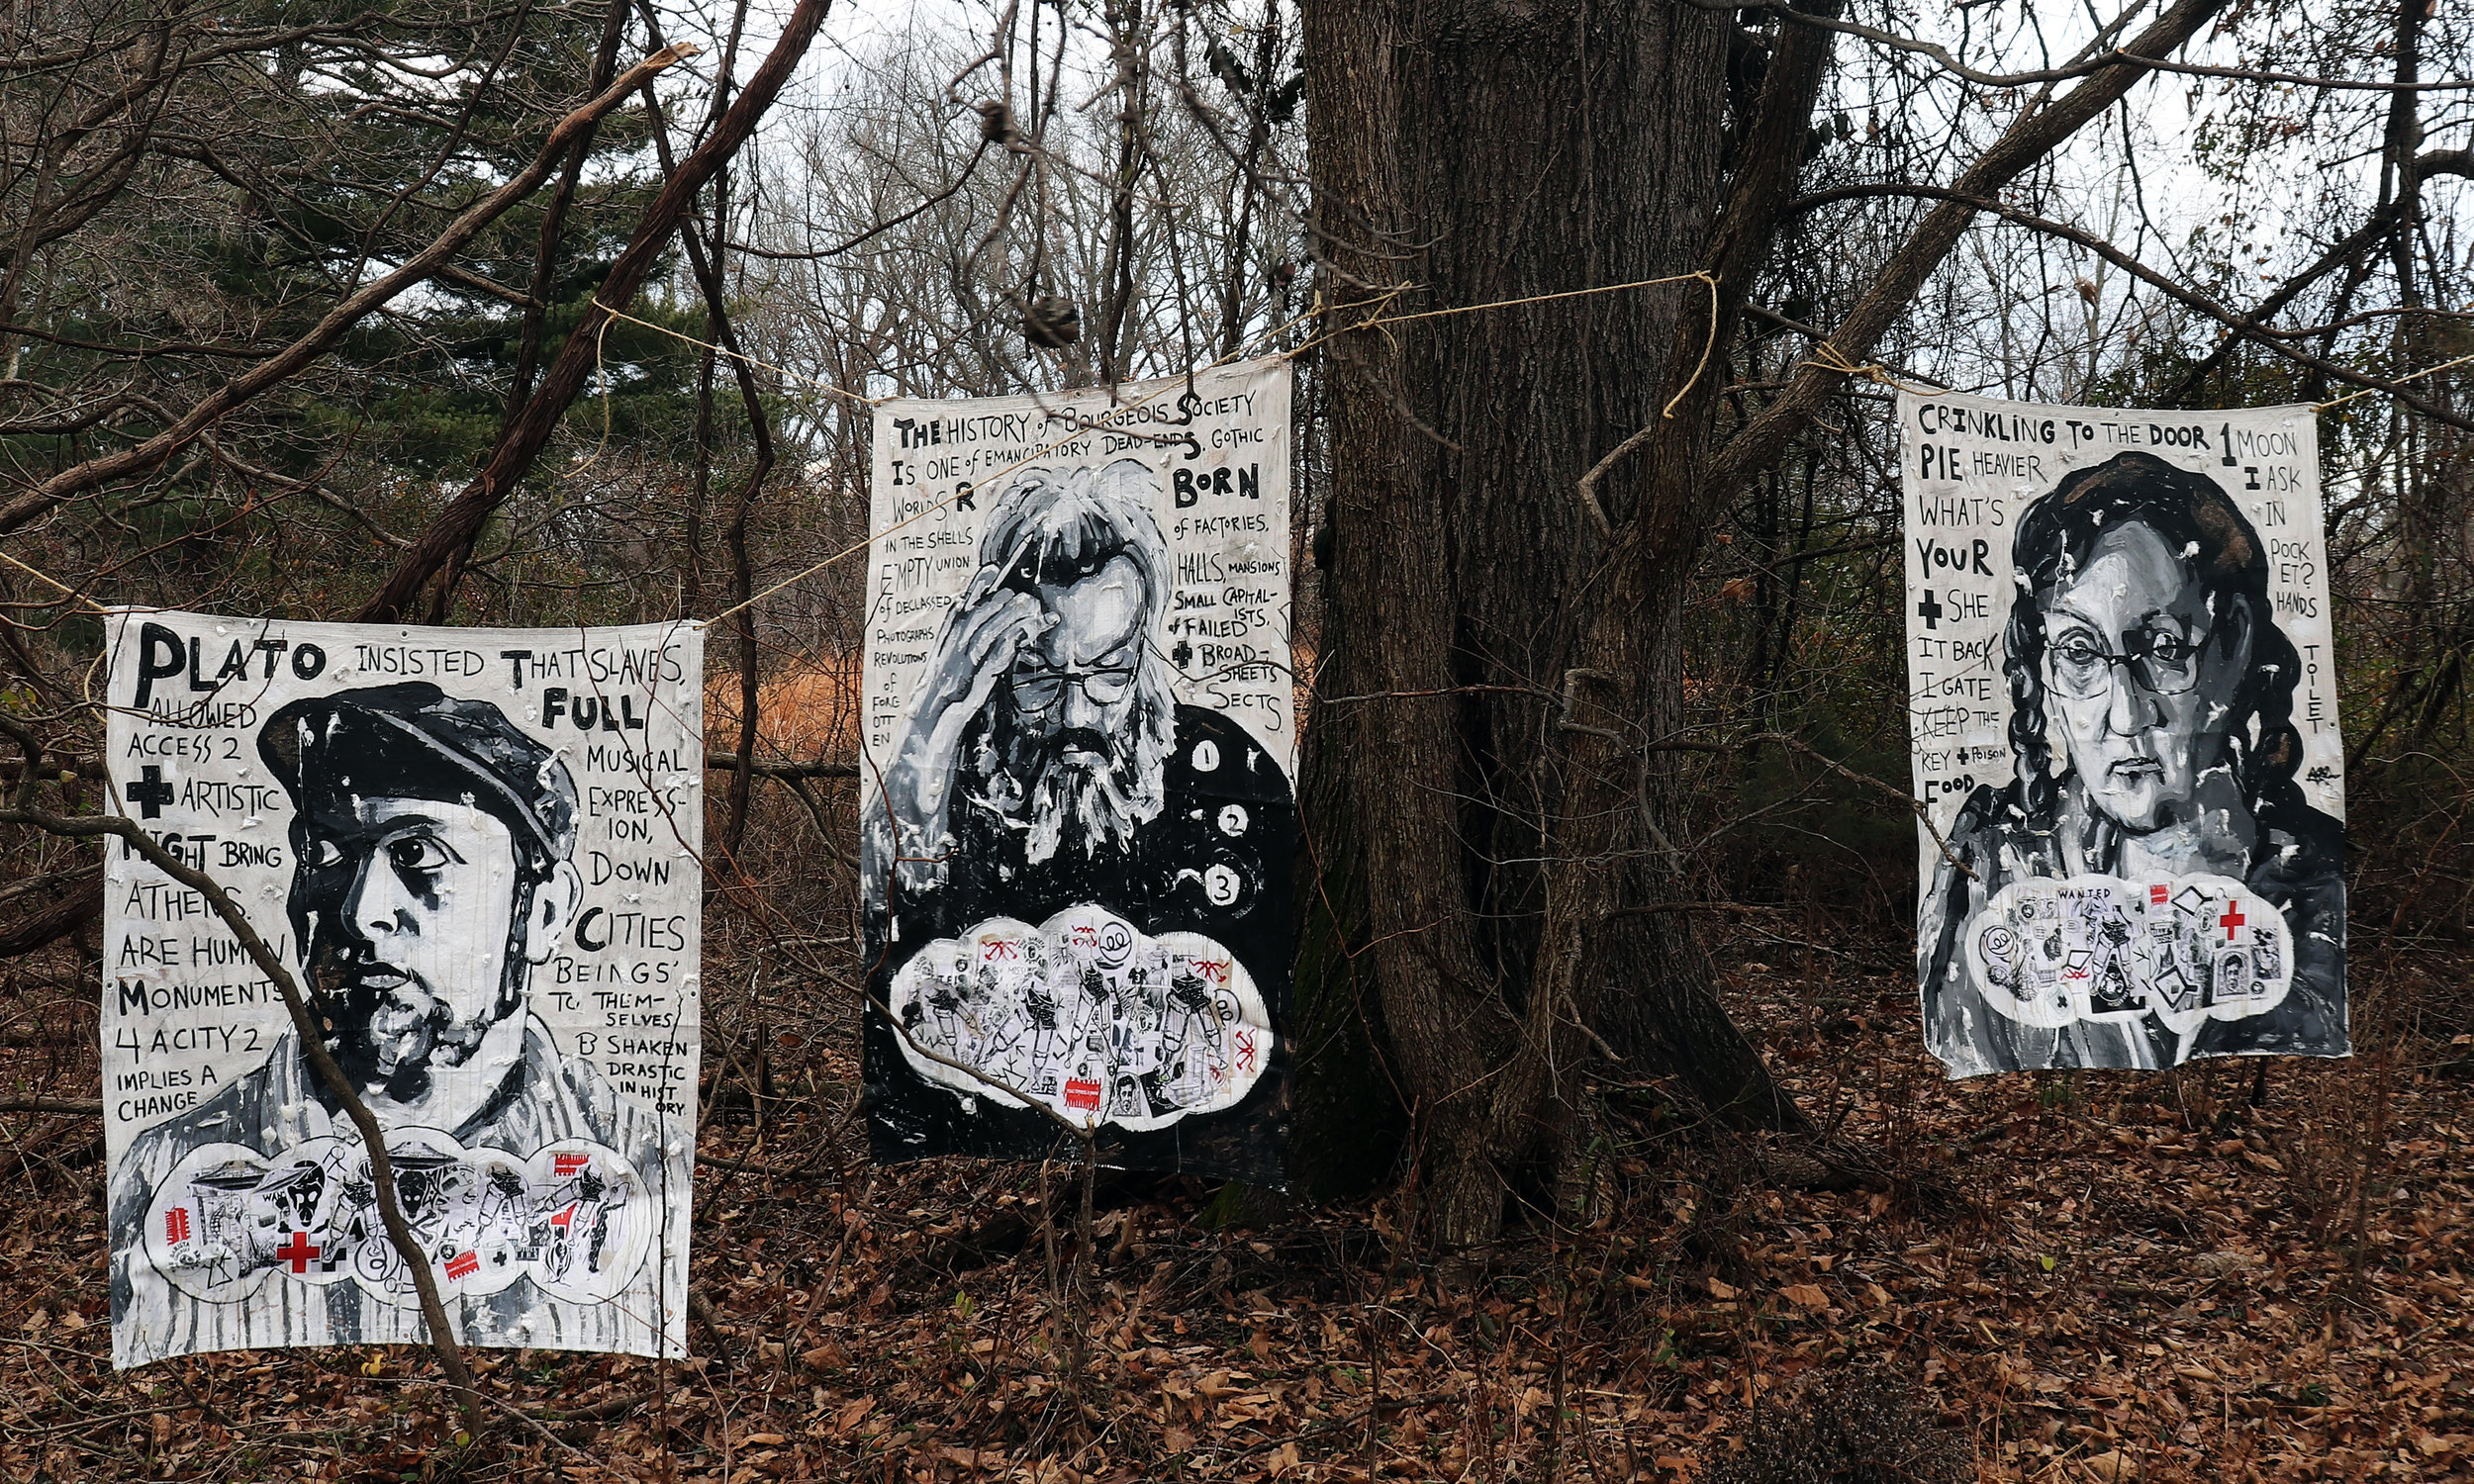 Paintings to Exhibit at the End of the World,  by Adam Turl. Acrylic, cotton, stickers, graphite, coffee and mixed-media on canvas tarps hung in the woods. (2018-2019)